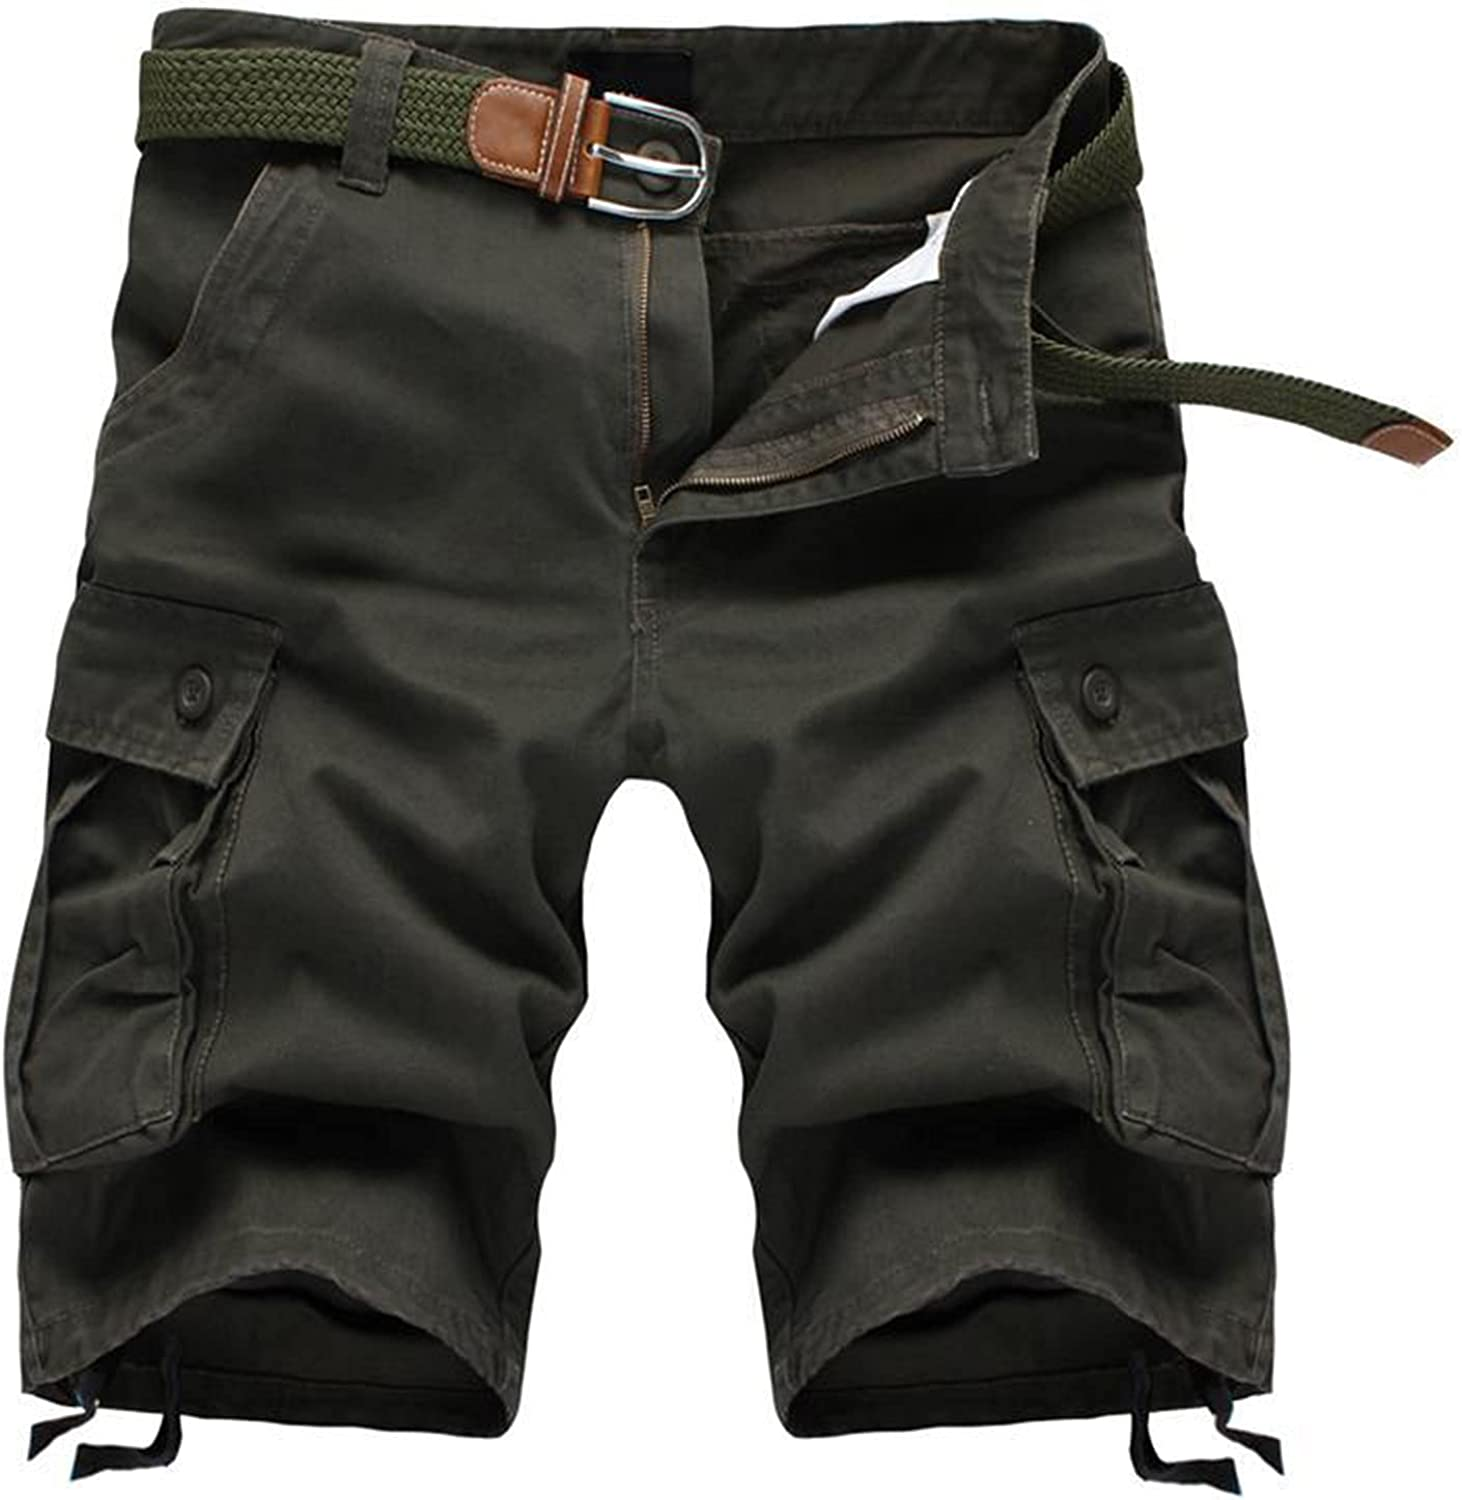 Cargo Shorts for Men with Pockets Big and Tall Outdoor Hiking Shorts Quick Dry Stretch Cargo Short Pants